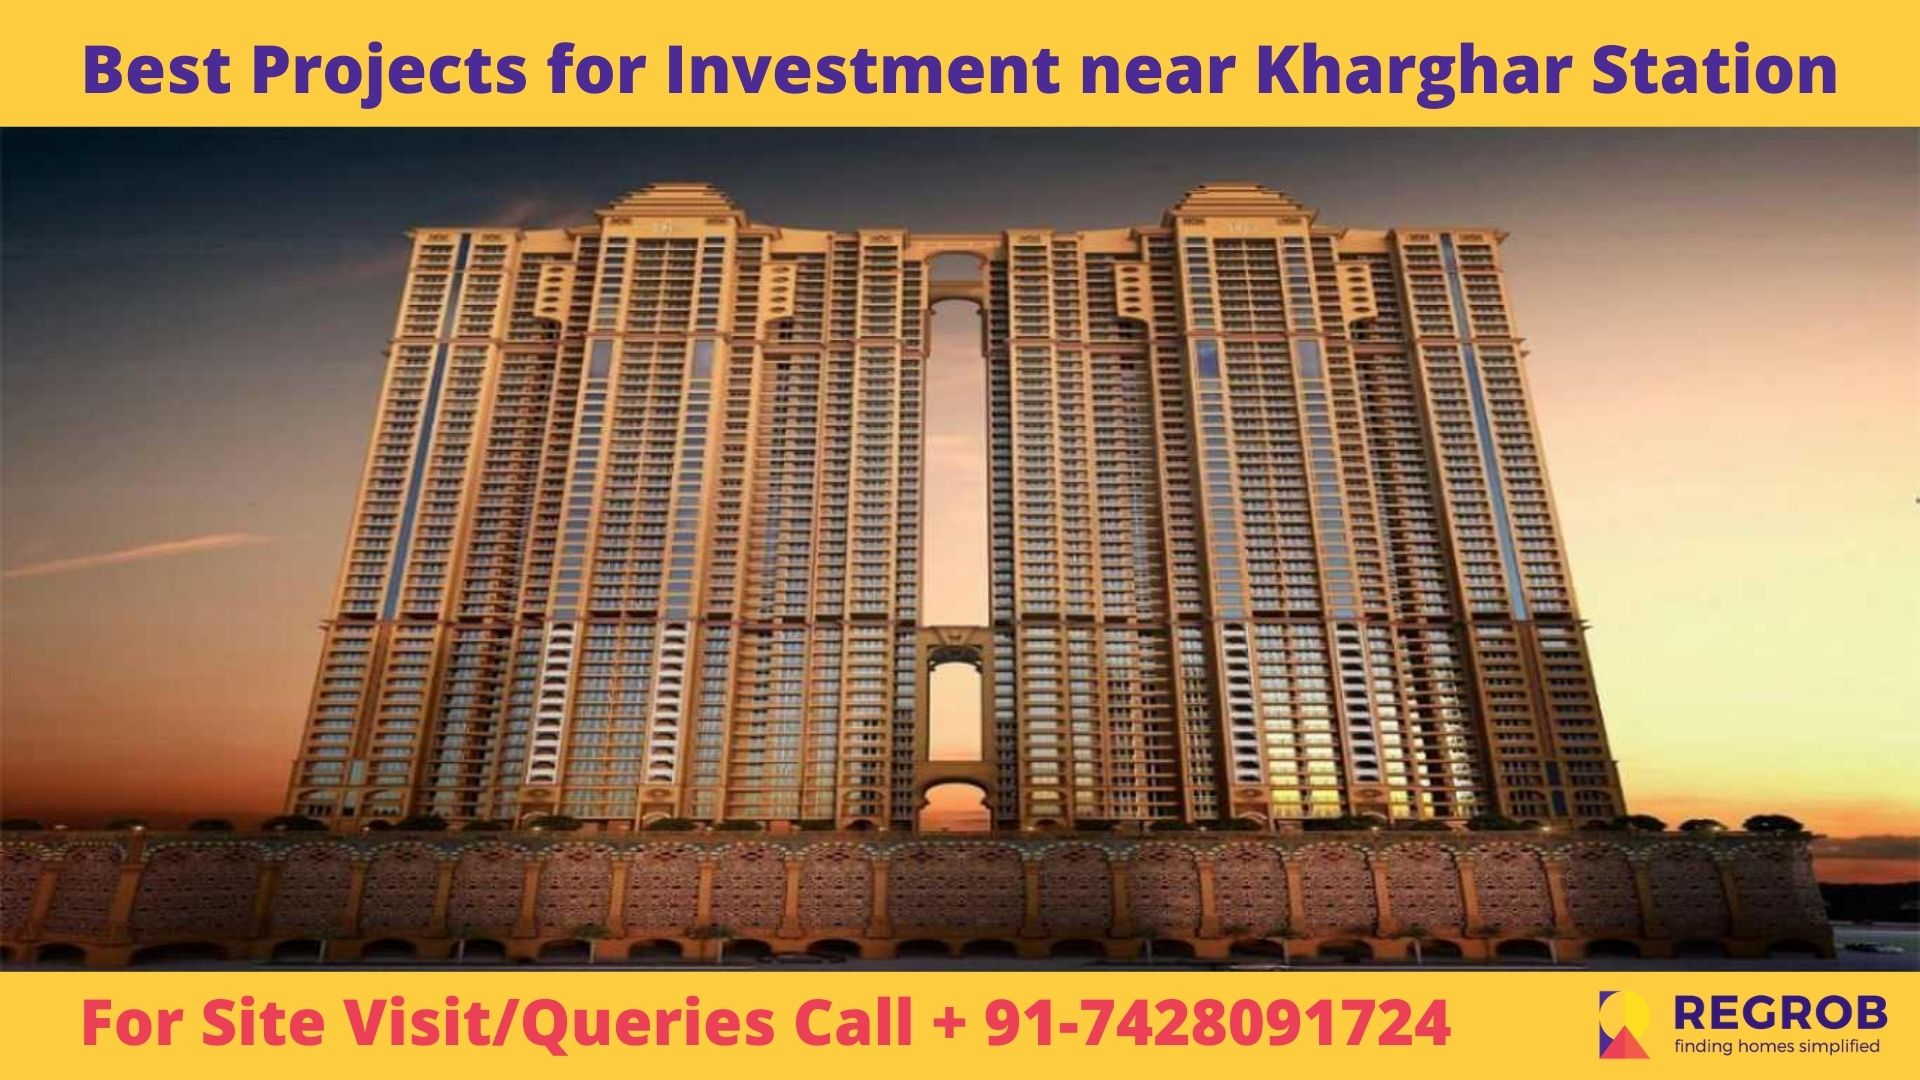 Best Projects for Investment near Kharghar Station